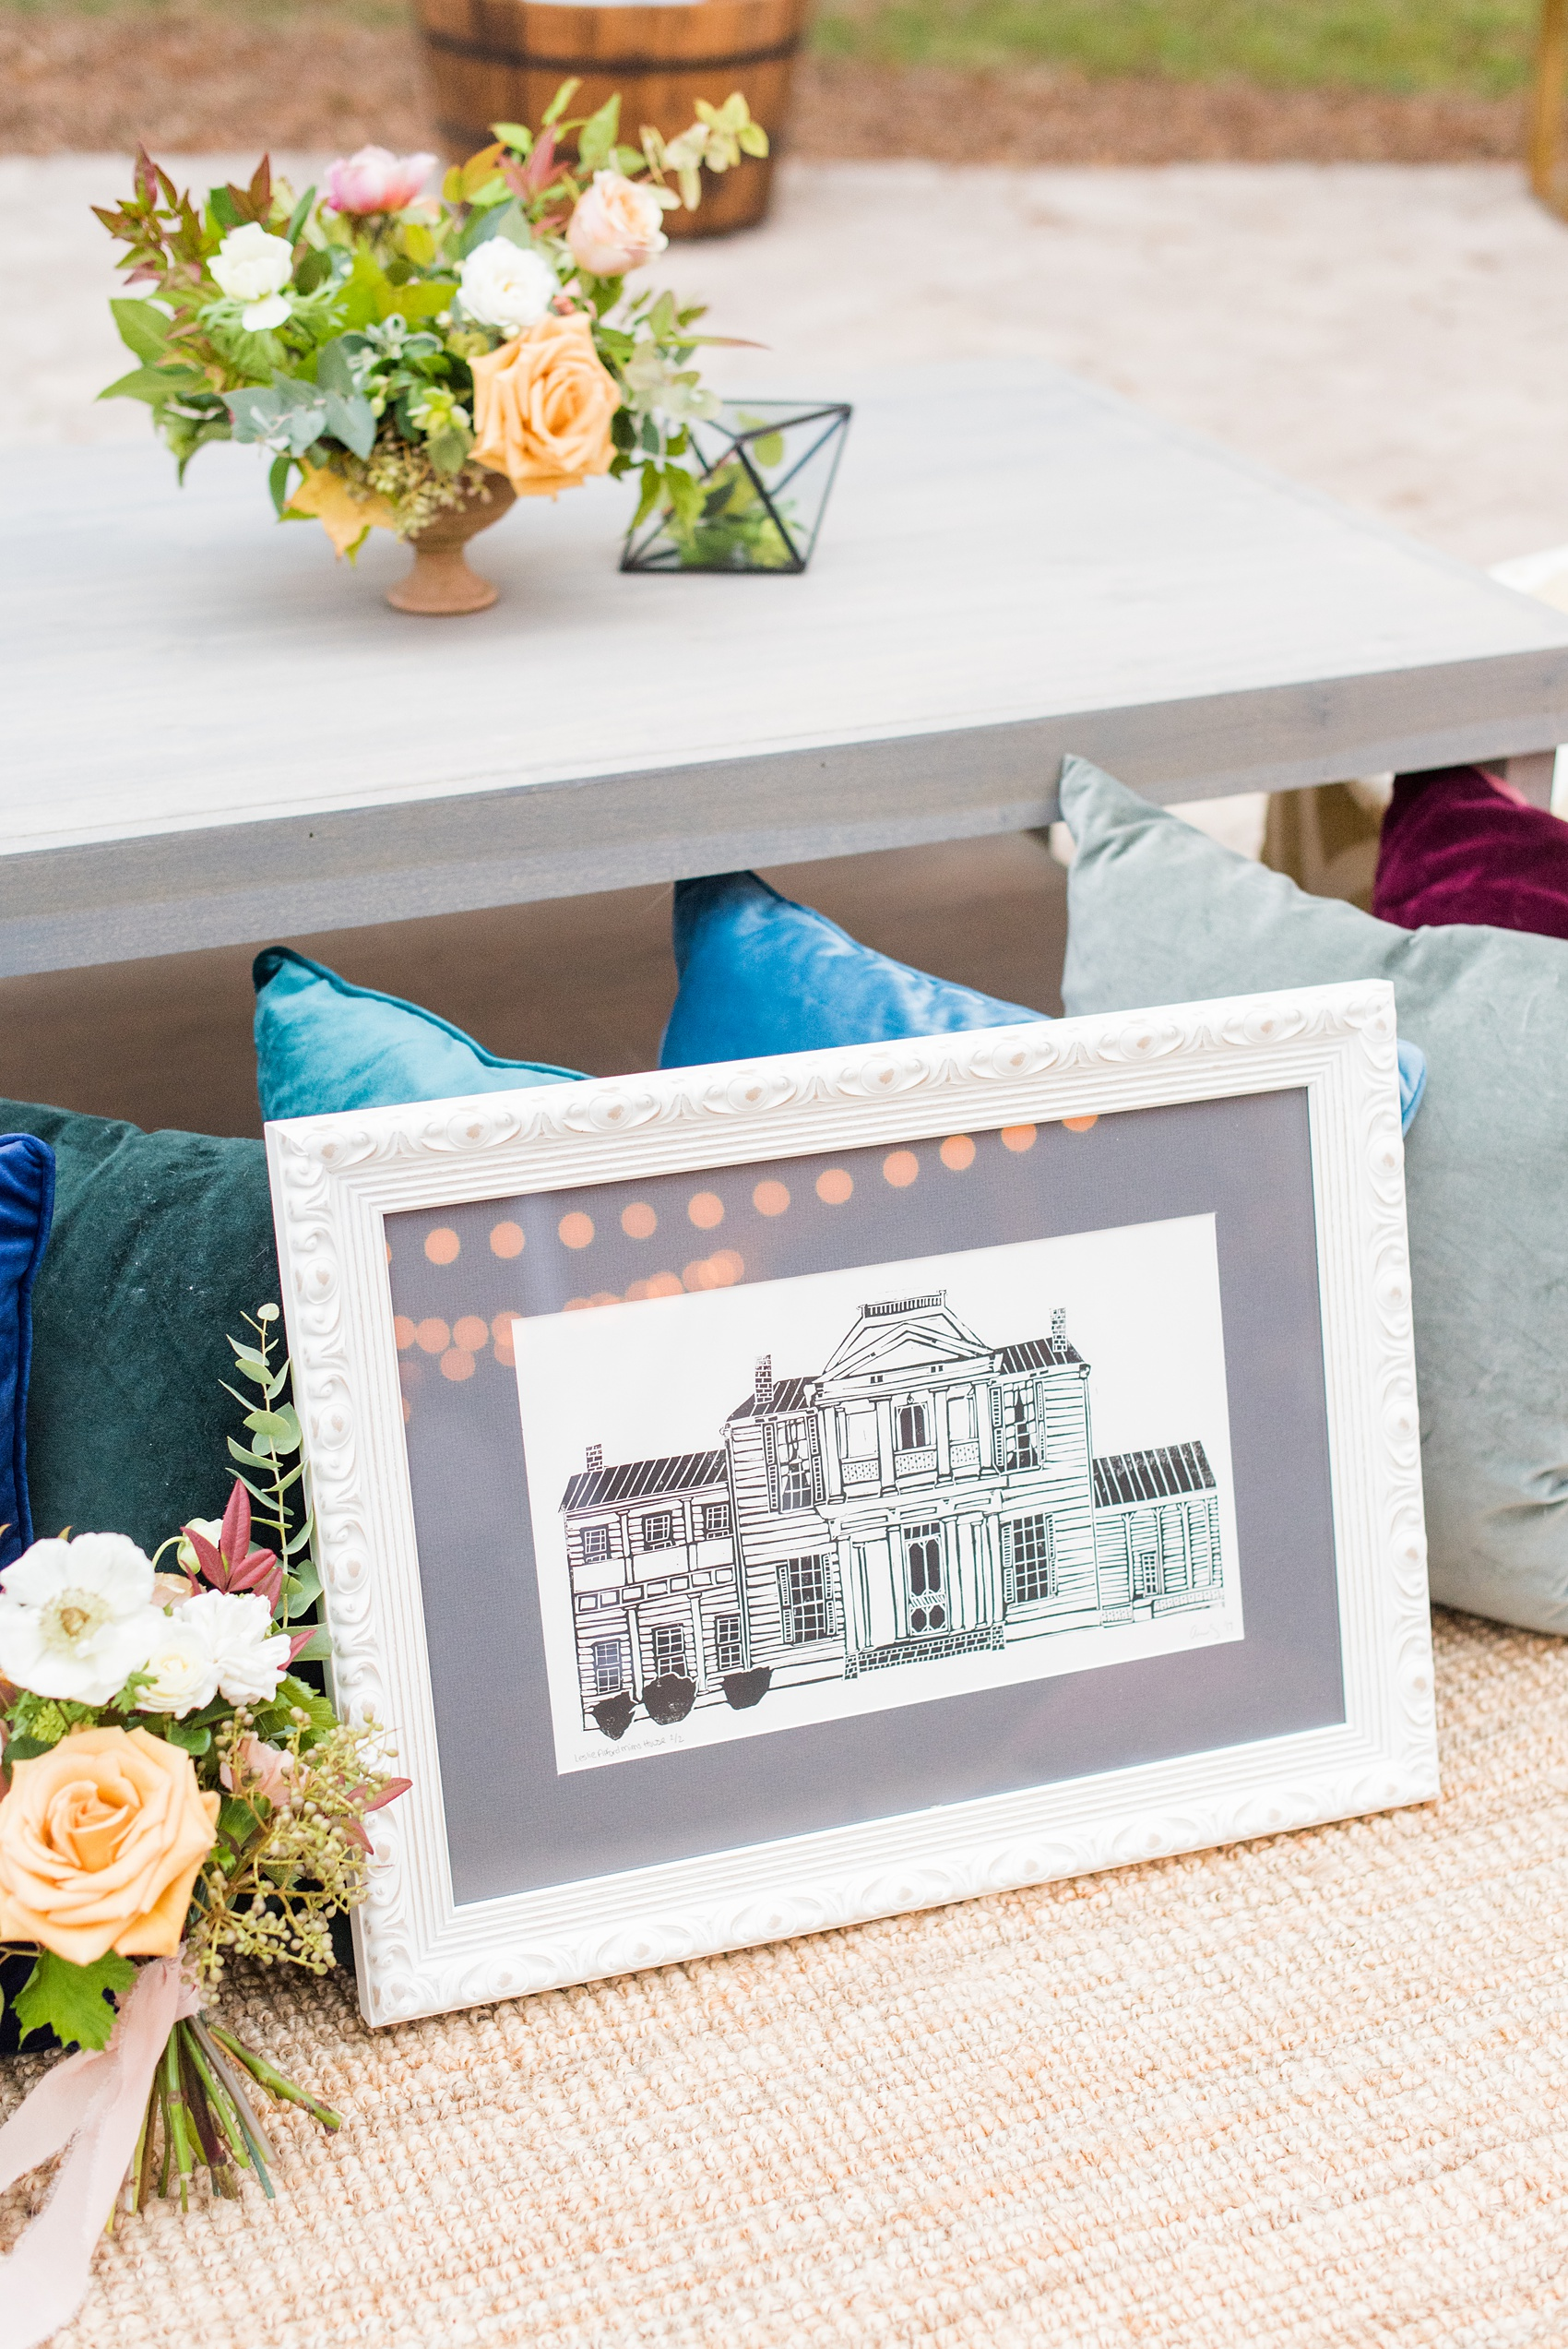 Mikkel Paige Photography photos from a wedding at Leslie-Alford Mims House in North Carolina. Picture of a linocut print the bride had made for their invitations, then framed for the historic venue.